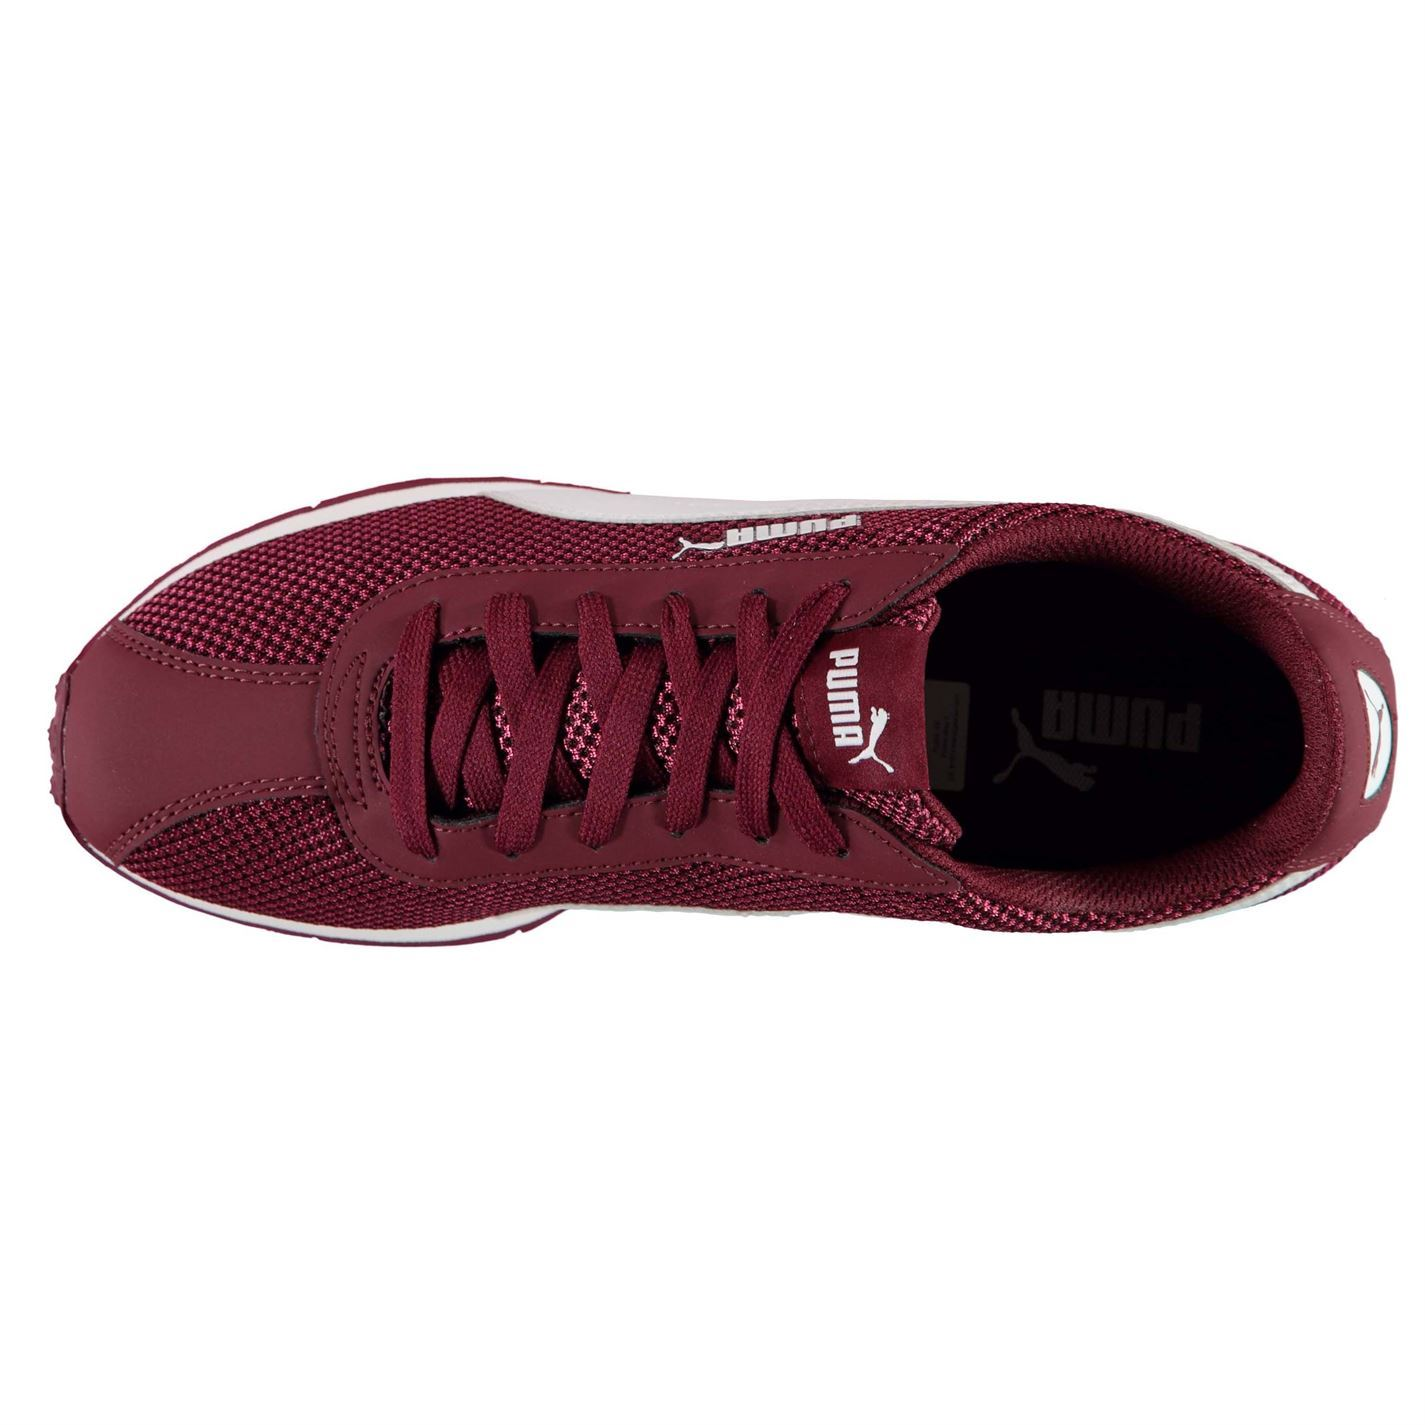 ... Puma Turin Mesh Trainers Mens Burgundy Athletic Sneakers Shoes c7690765006